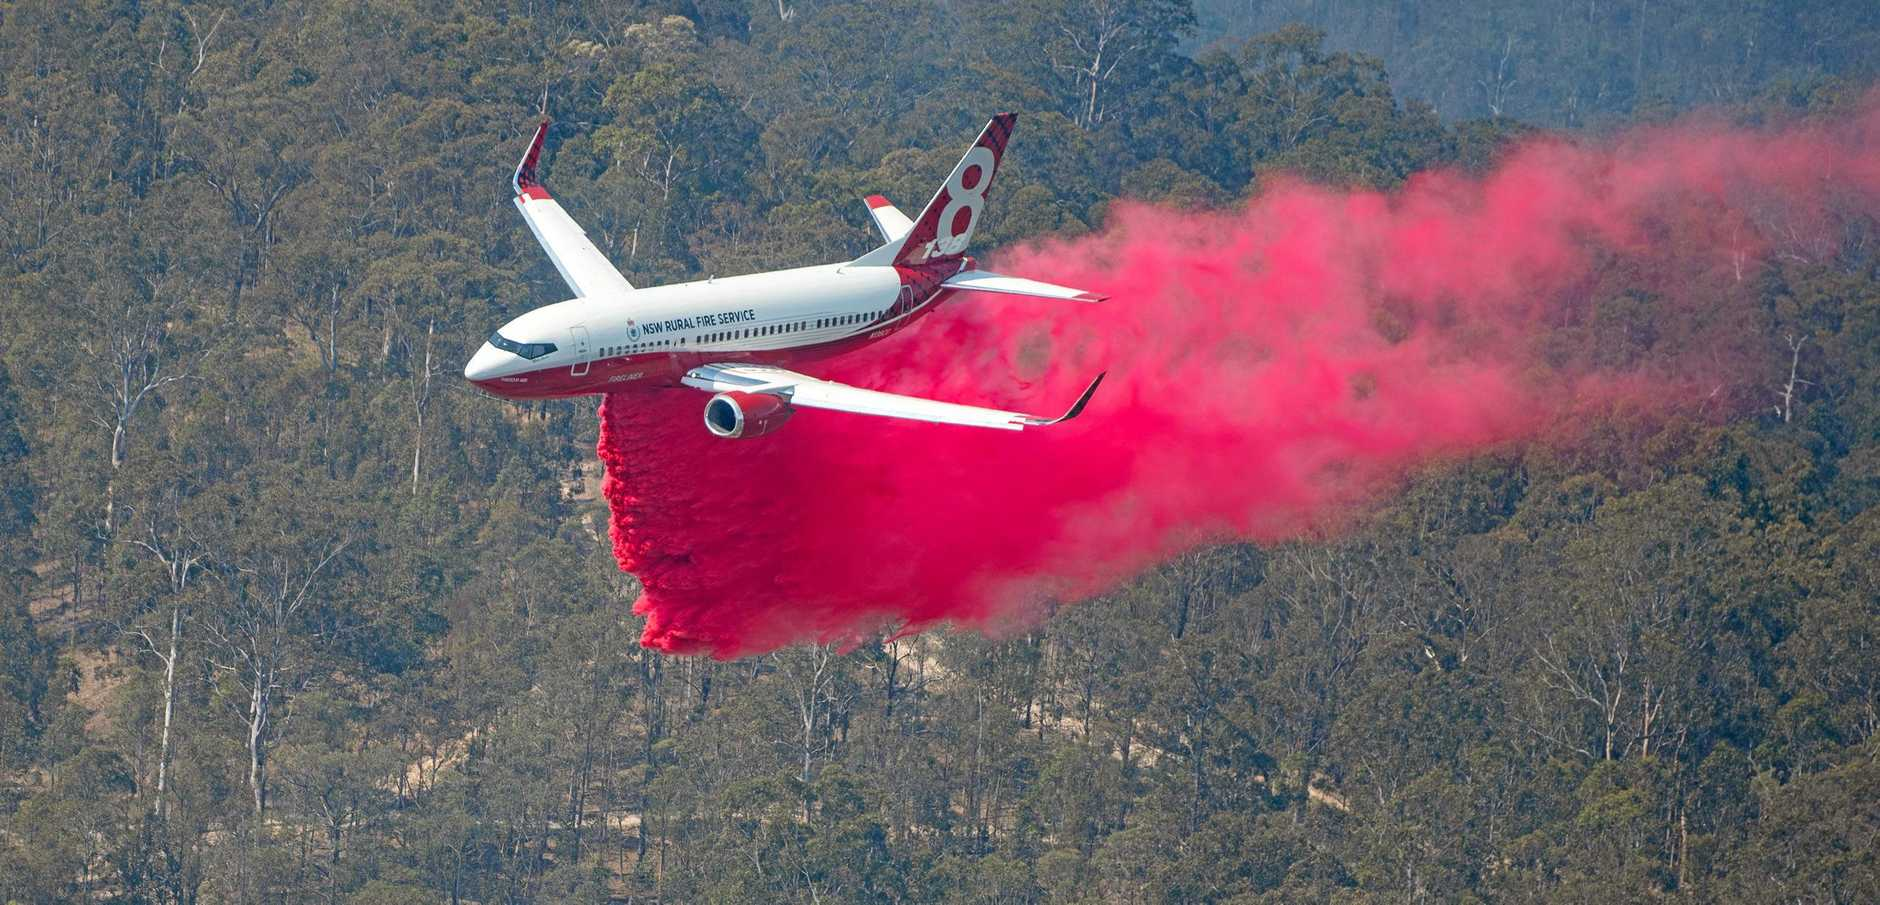 AIR ATTACK: The NSW Rural Fire Service used a number of different aviation attacks to fight the Long Gully Road Fire  and assist ground crews to maintain containment lines and protect life and property.